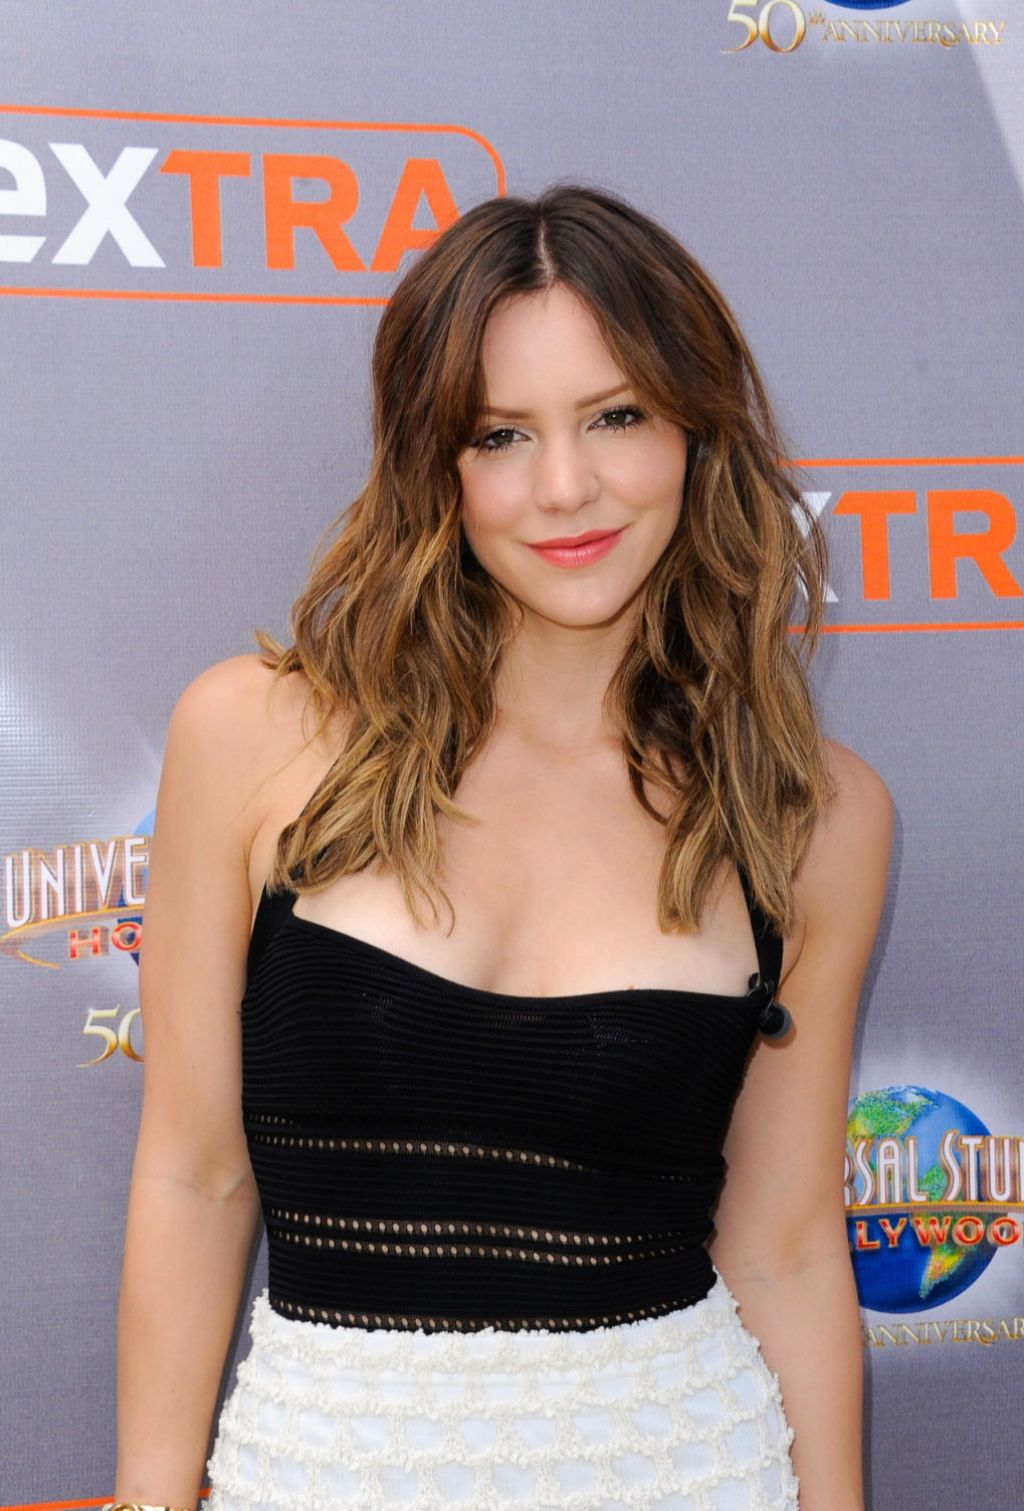 The 33-year old daughter of father Daniel McPhee and mother Adriana McPhee, 180 cm tall Katharine McPhee in 2017 photo